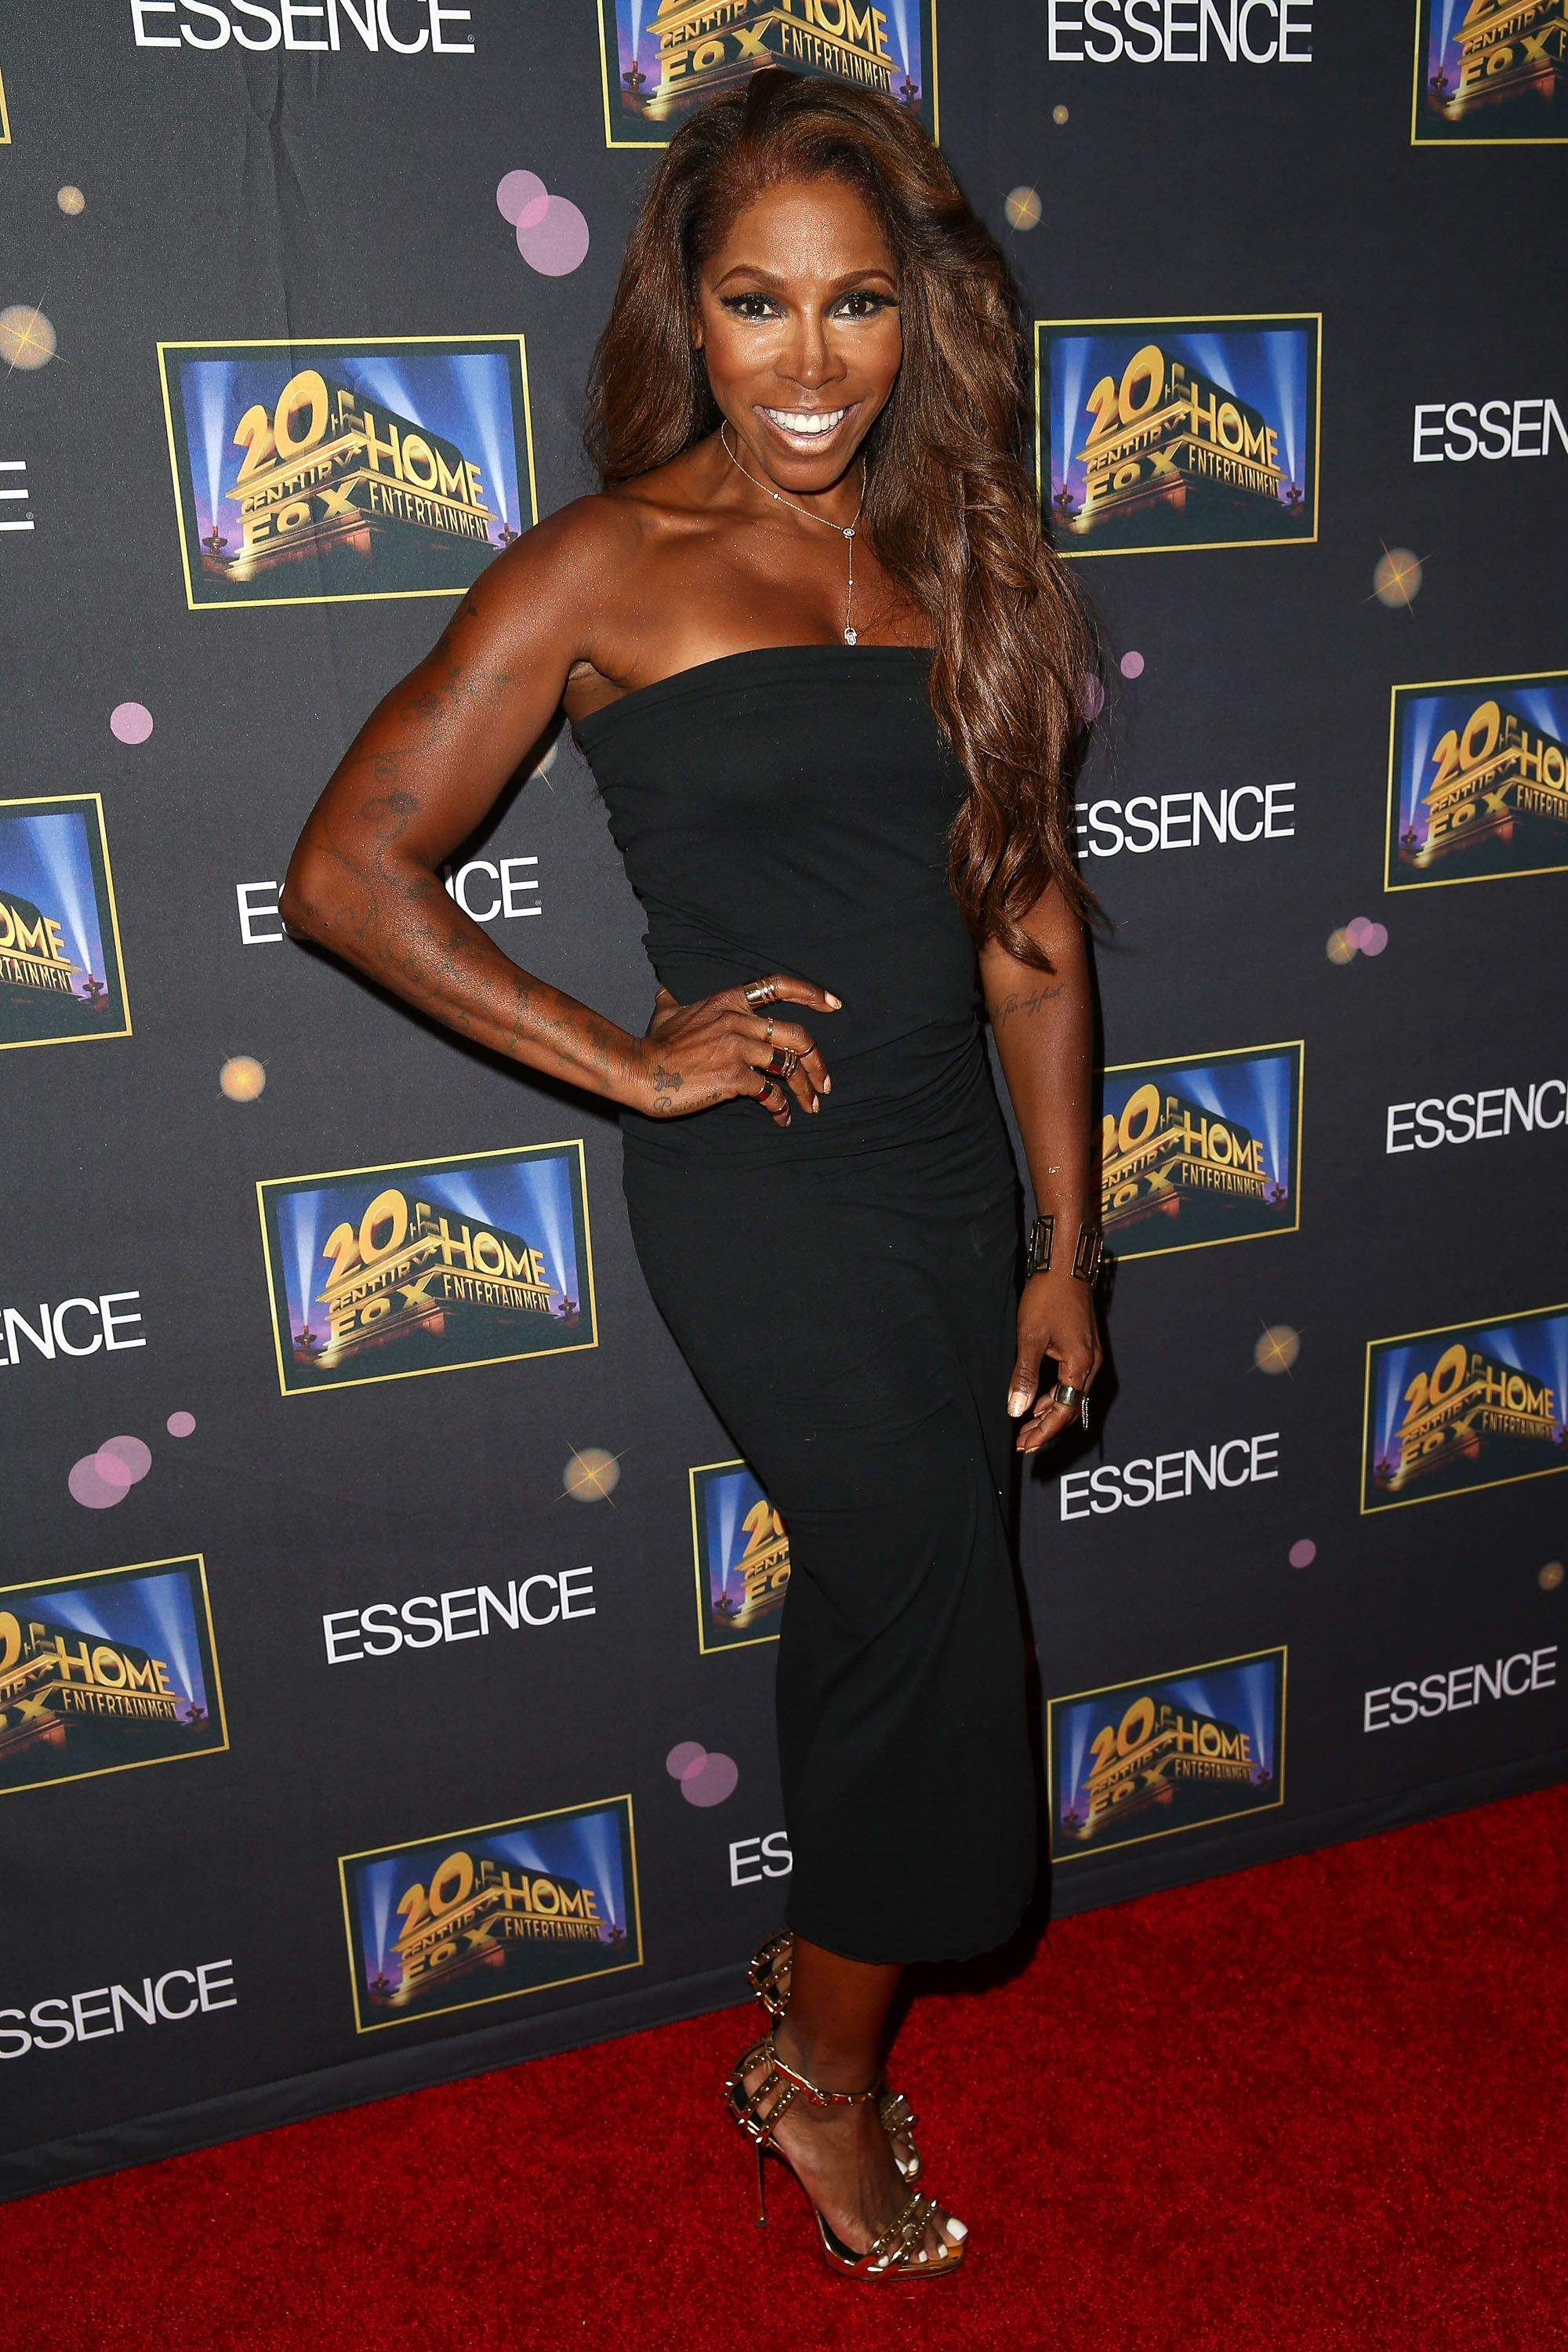 """Adrienne-Joi Johnson during the Essence """"A Toast To Primetime"""" event at Herringbone, Mondrian LA on October 2, 2014 in Beverly Hills, California. 